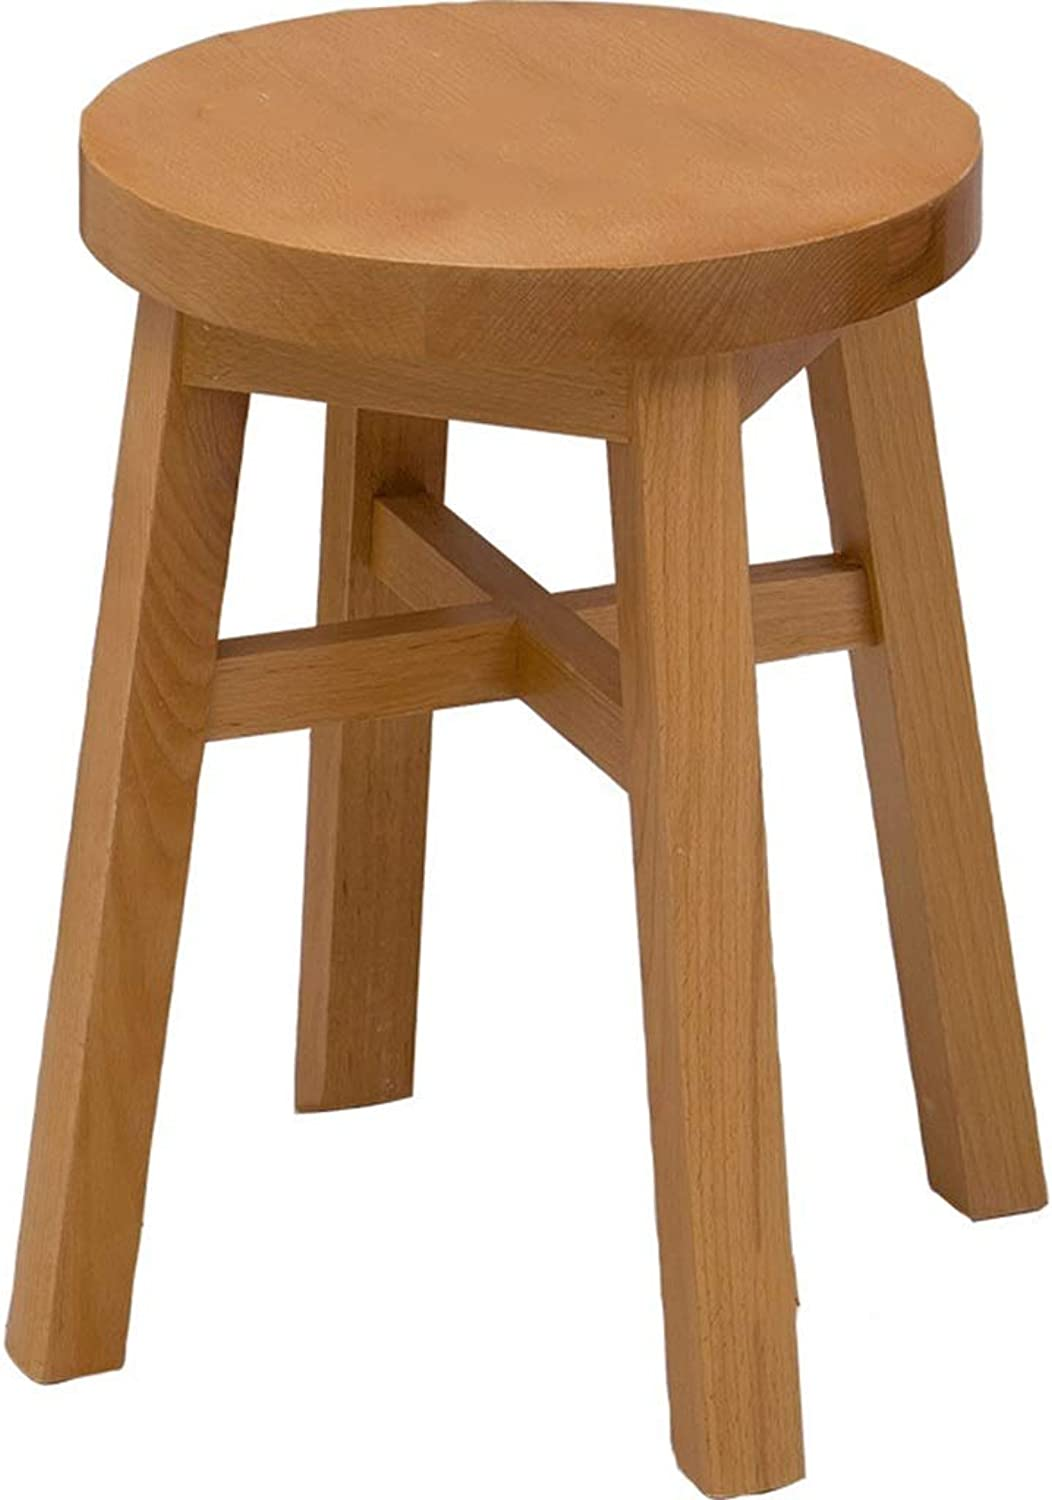 Solid Wooden Stool, Beech Stool, Simple Stool, Dining Table Stool, Household Wooden Stool (color   Brown)